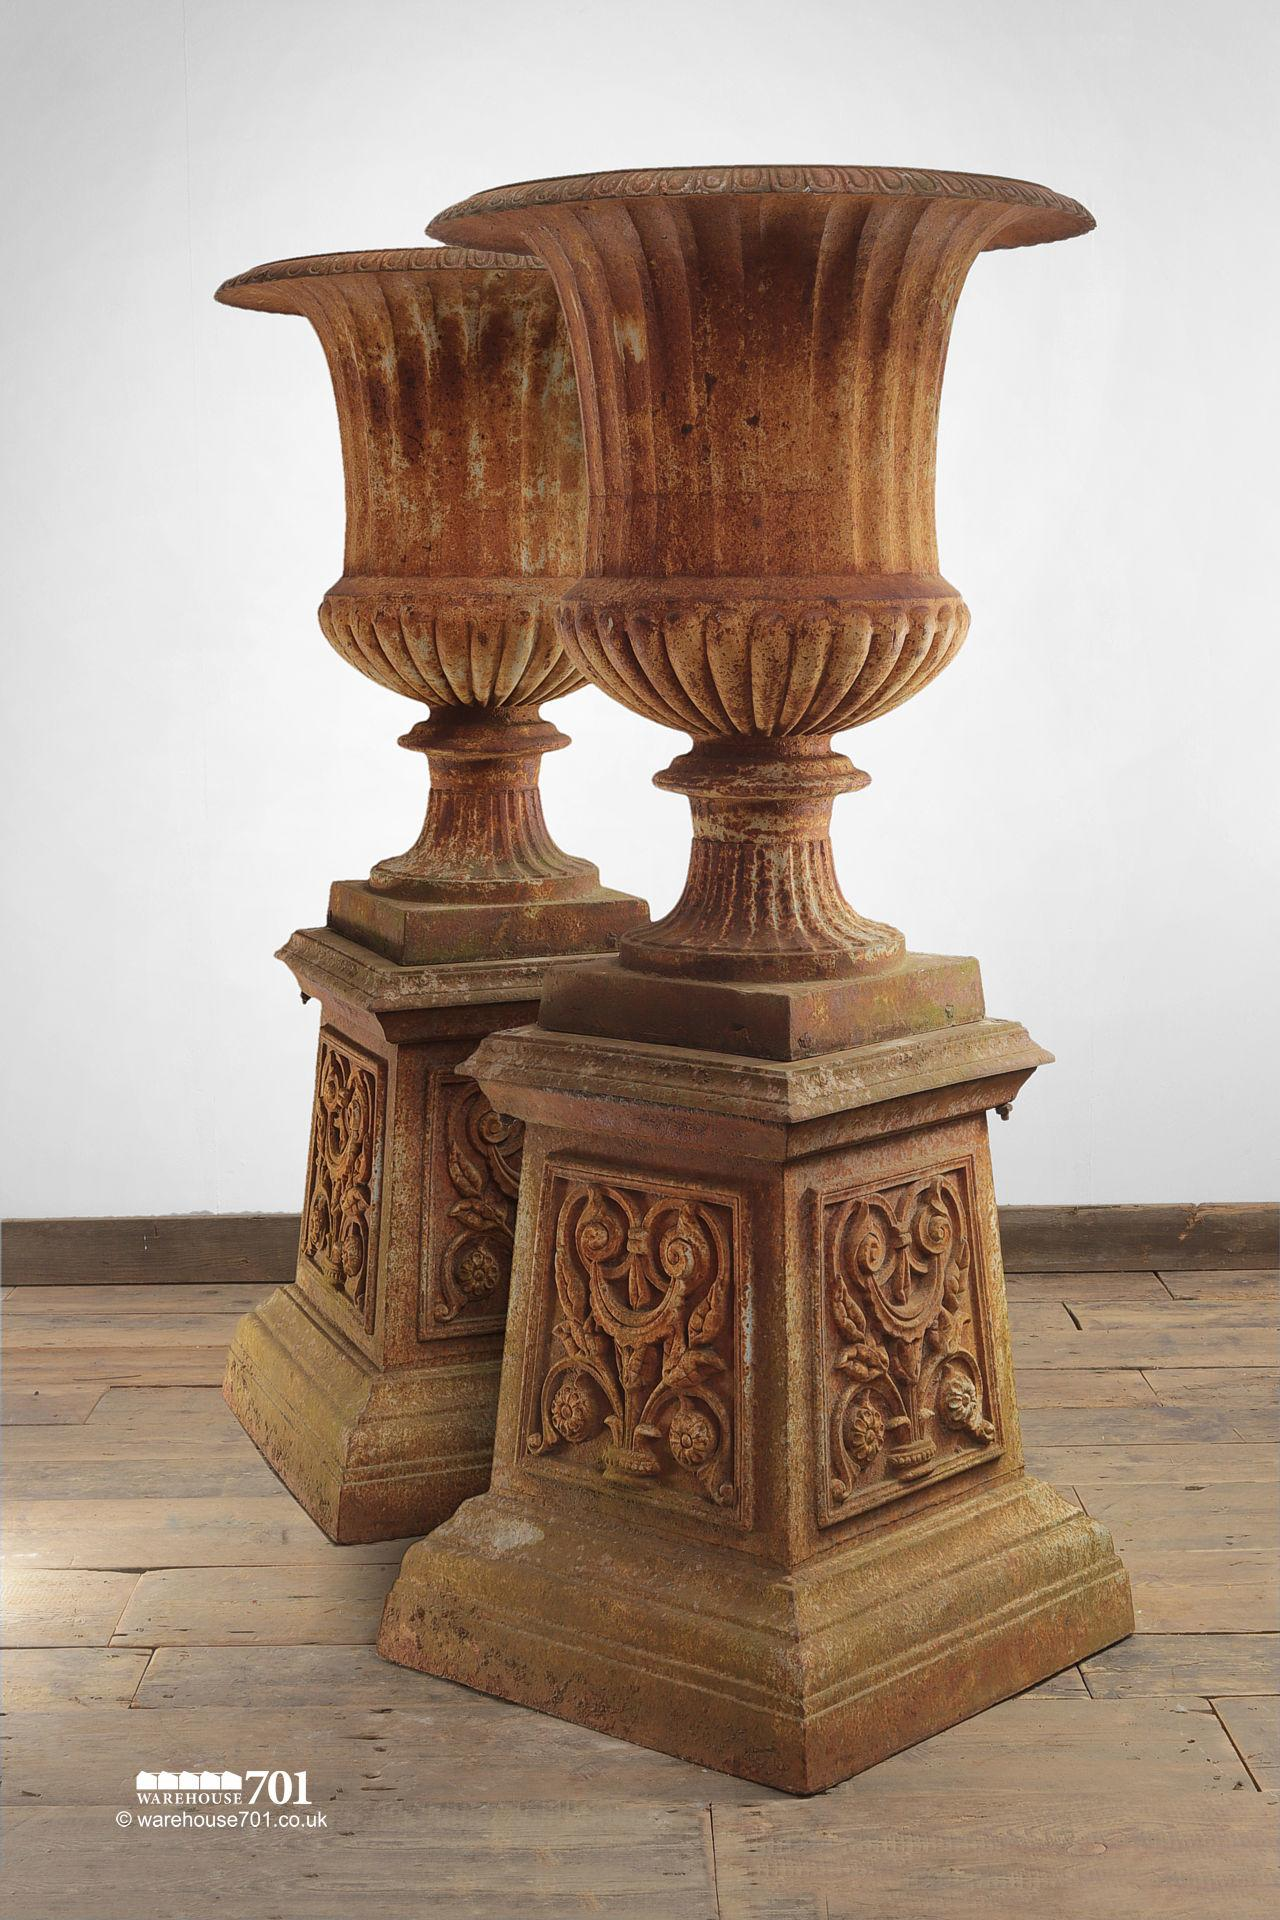 Pair of Aged Cast Iron Urns on Plinths